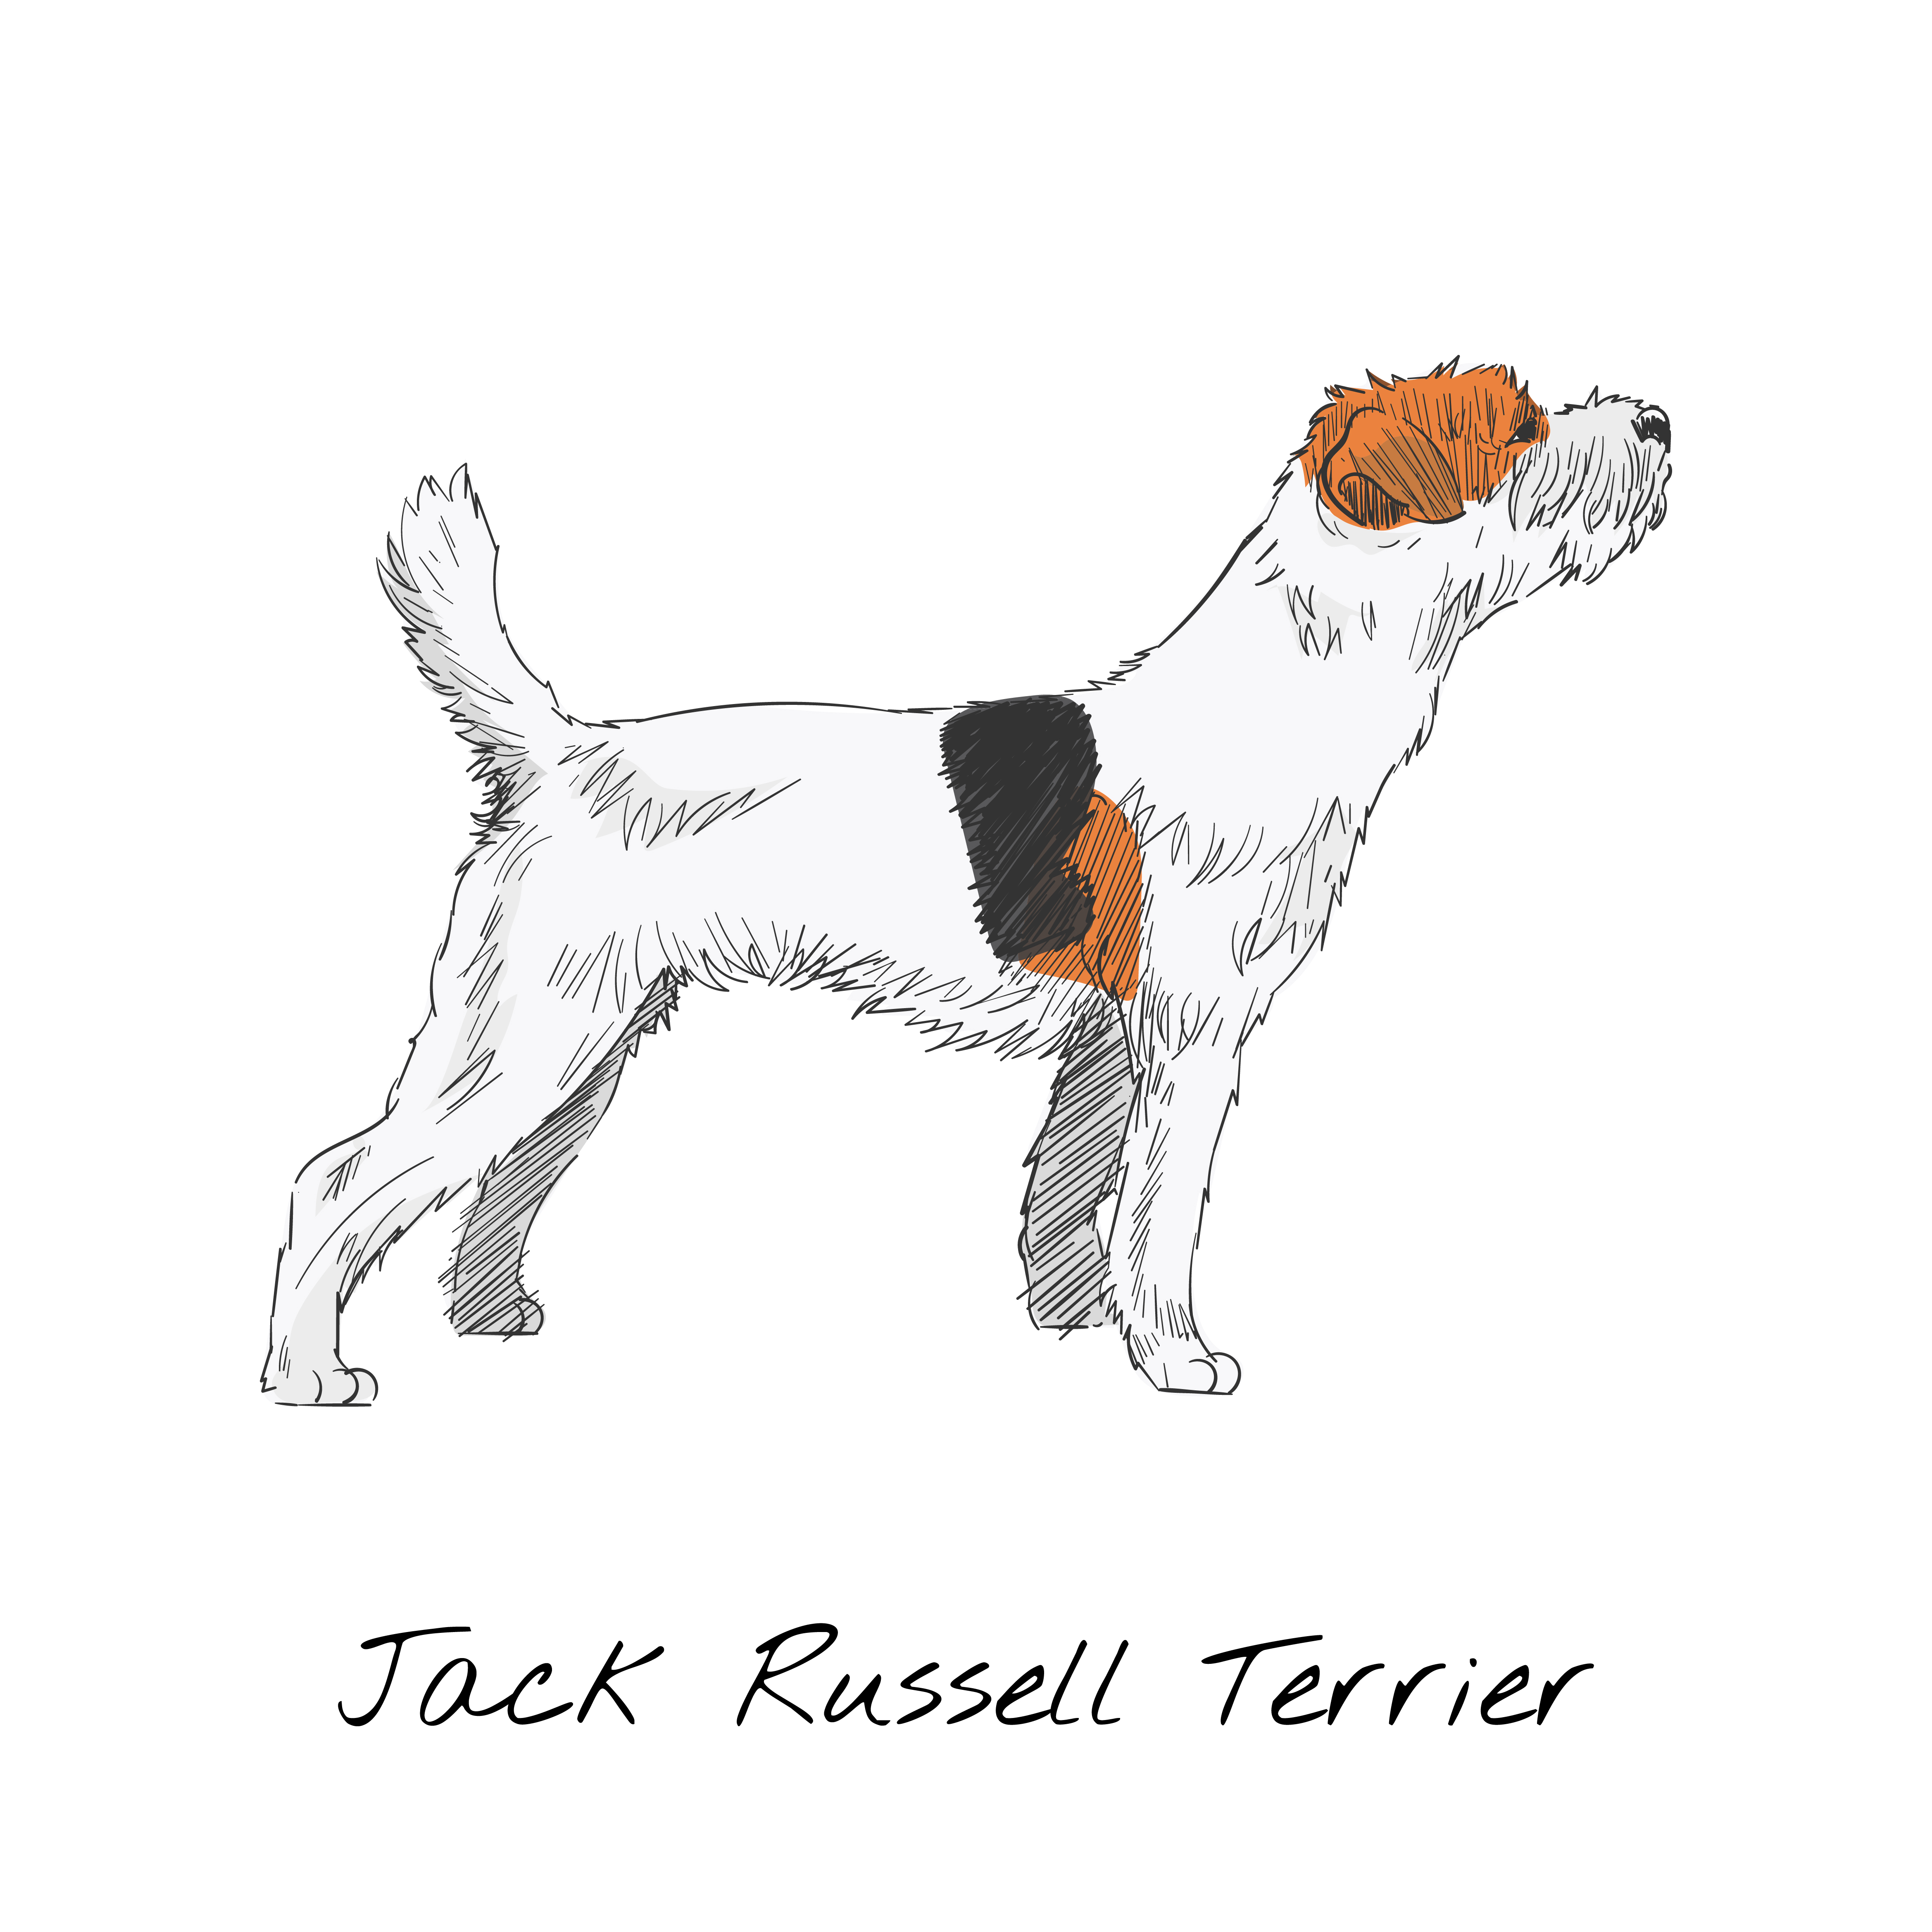 Jack Russell Terrier Vector At Vectorified